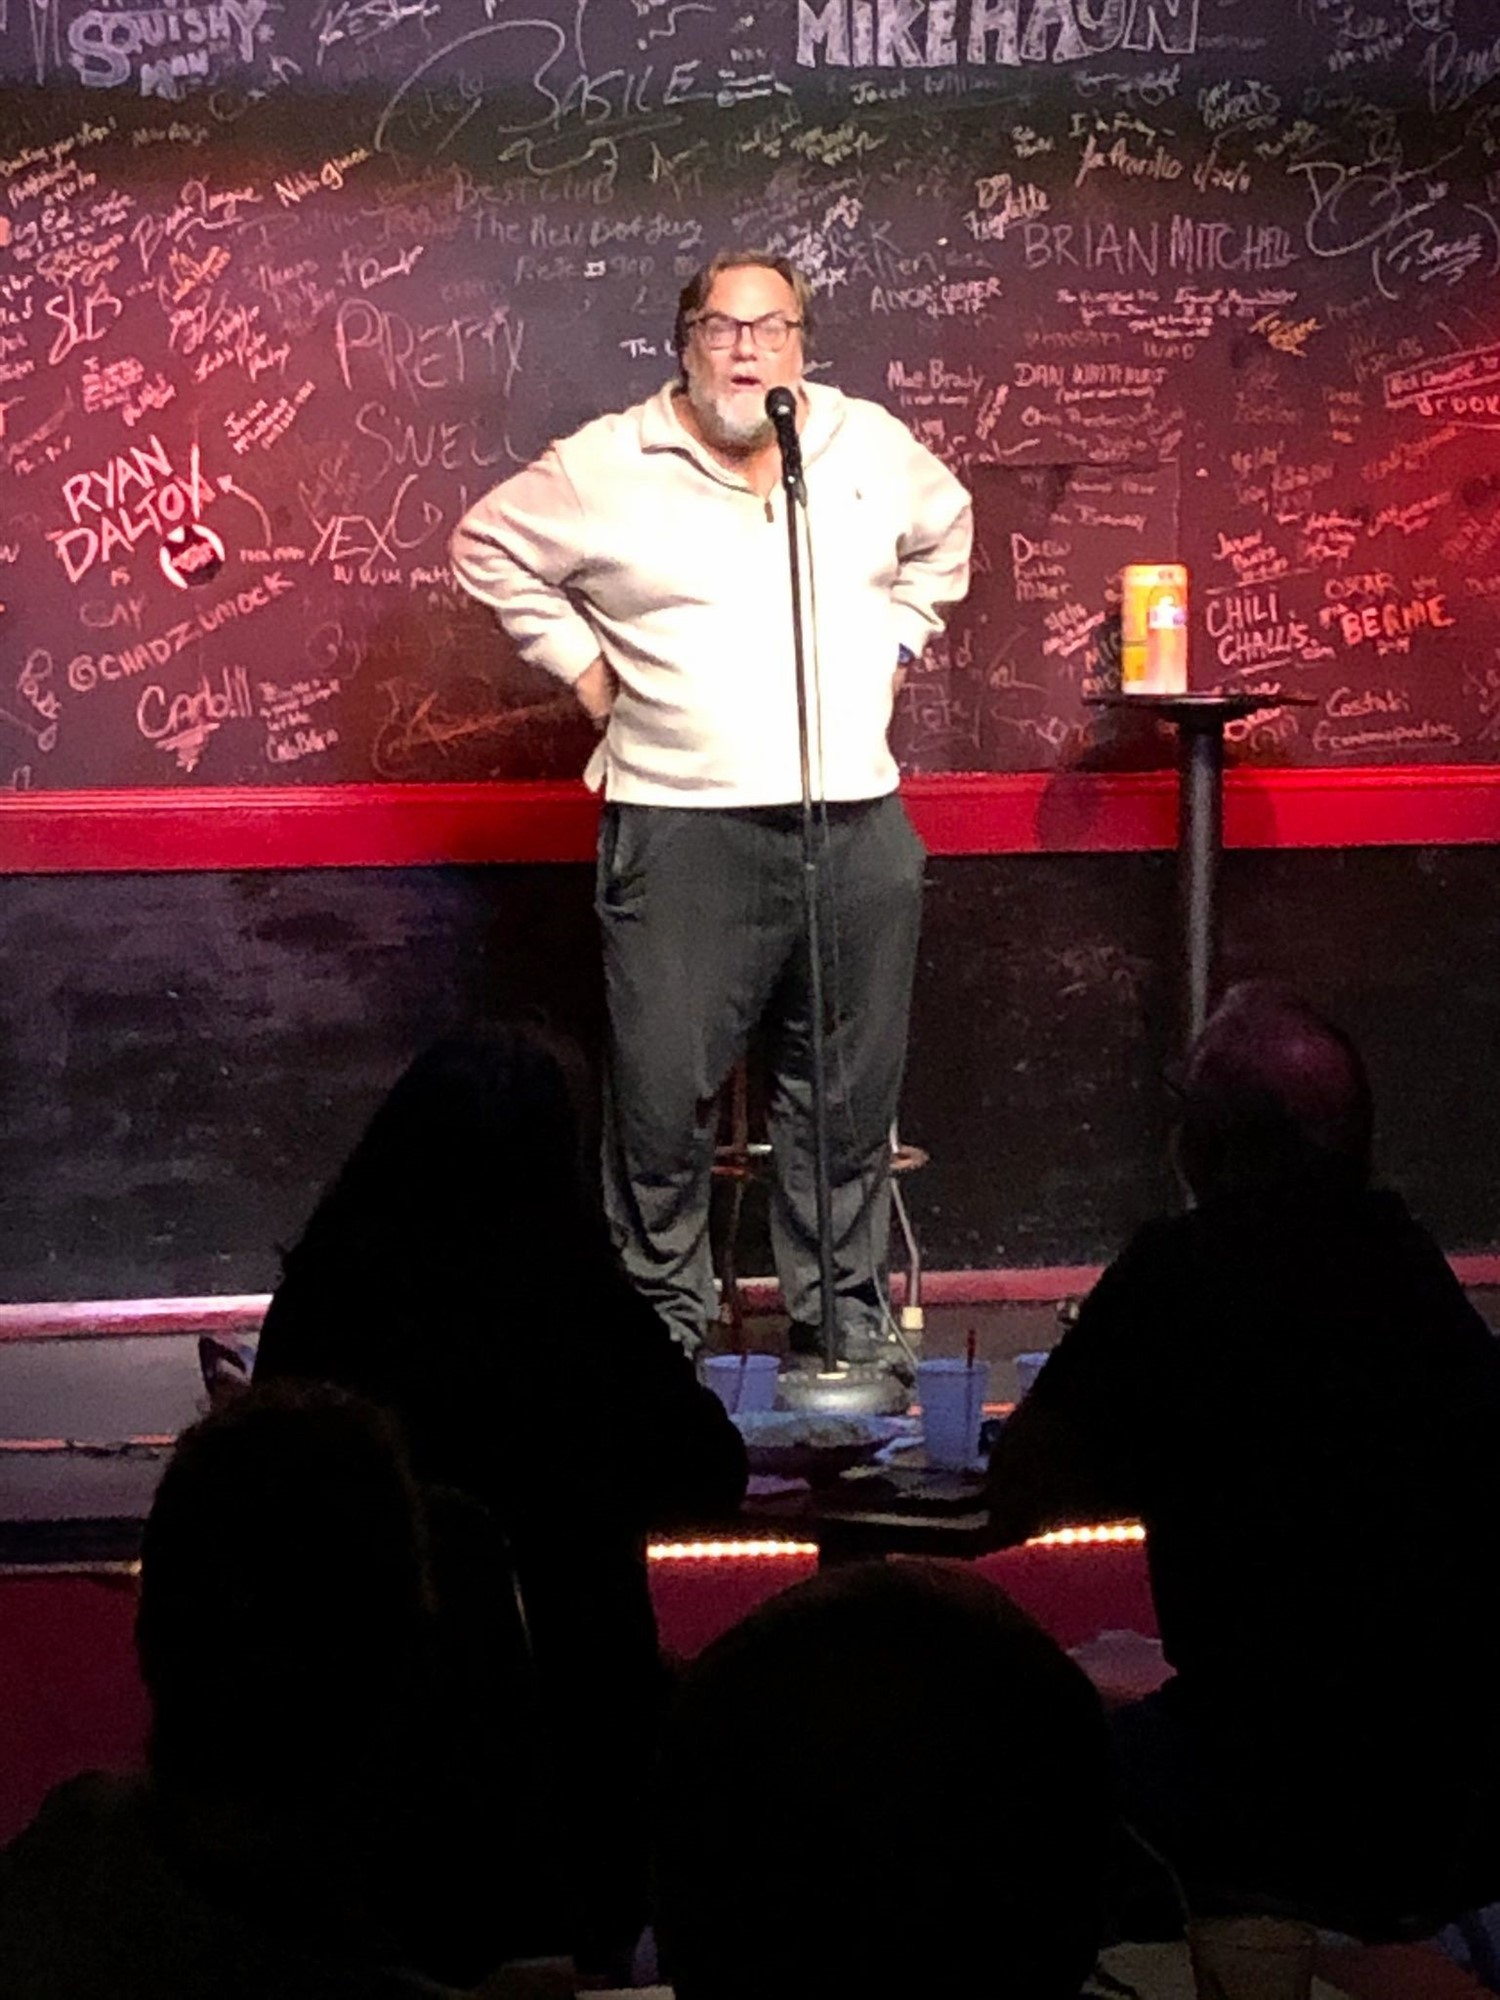 Kevin Farley 8:20 Show Funny Stop Comedy Club on Feb 13, 20:20@Funny Stop Comedy Club - Buy tickets and Get information on Funny Stop funnystop.online